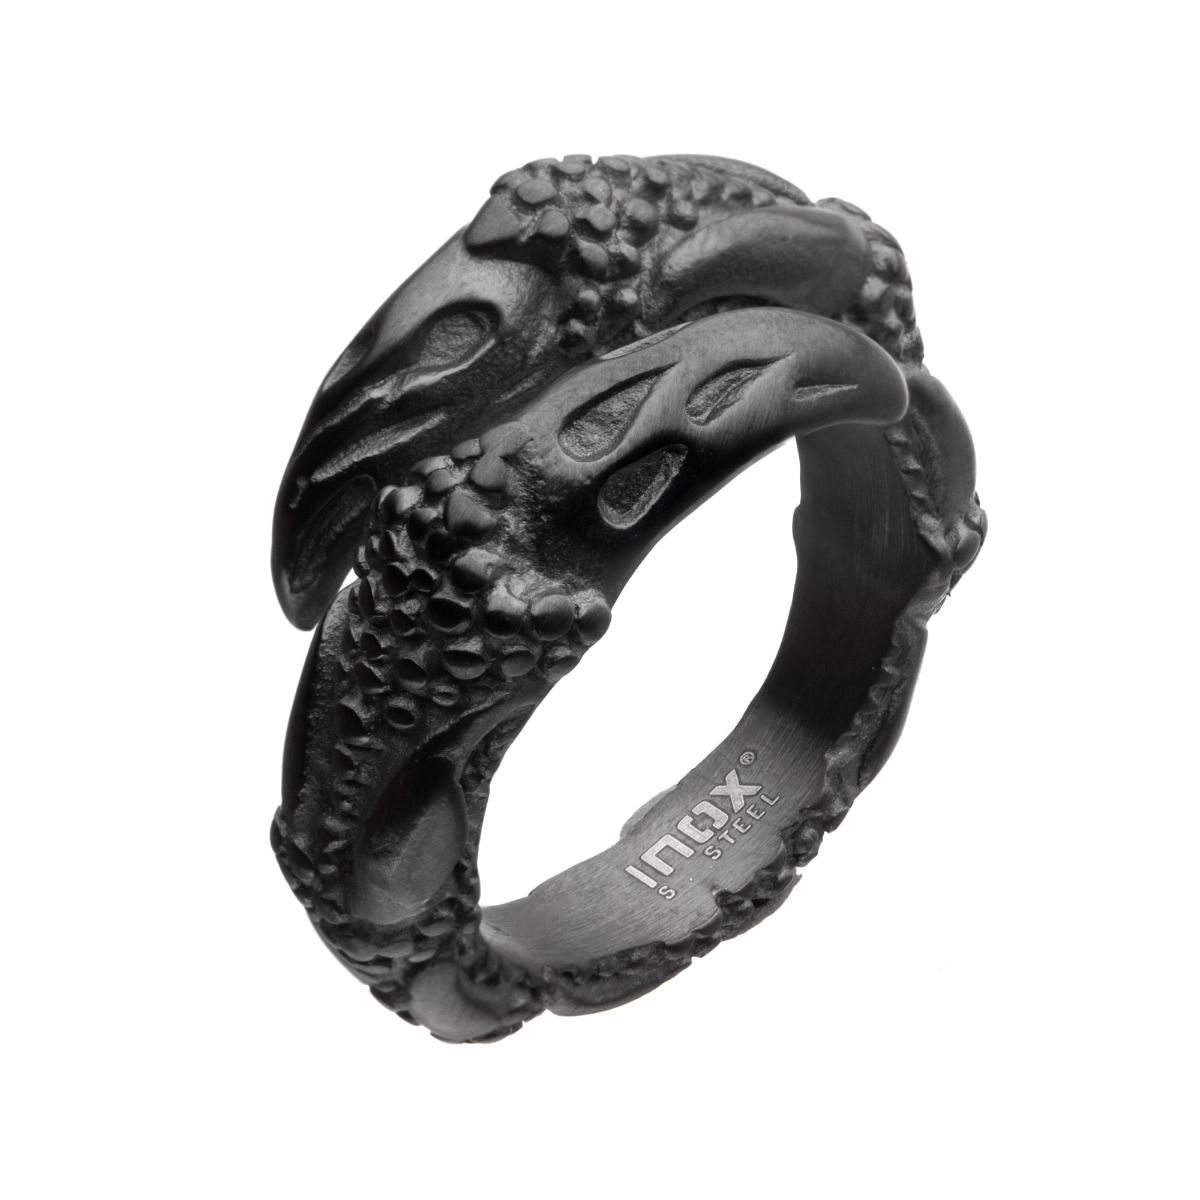 Steel & Black Plated Oxidized Claw Ring